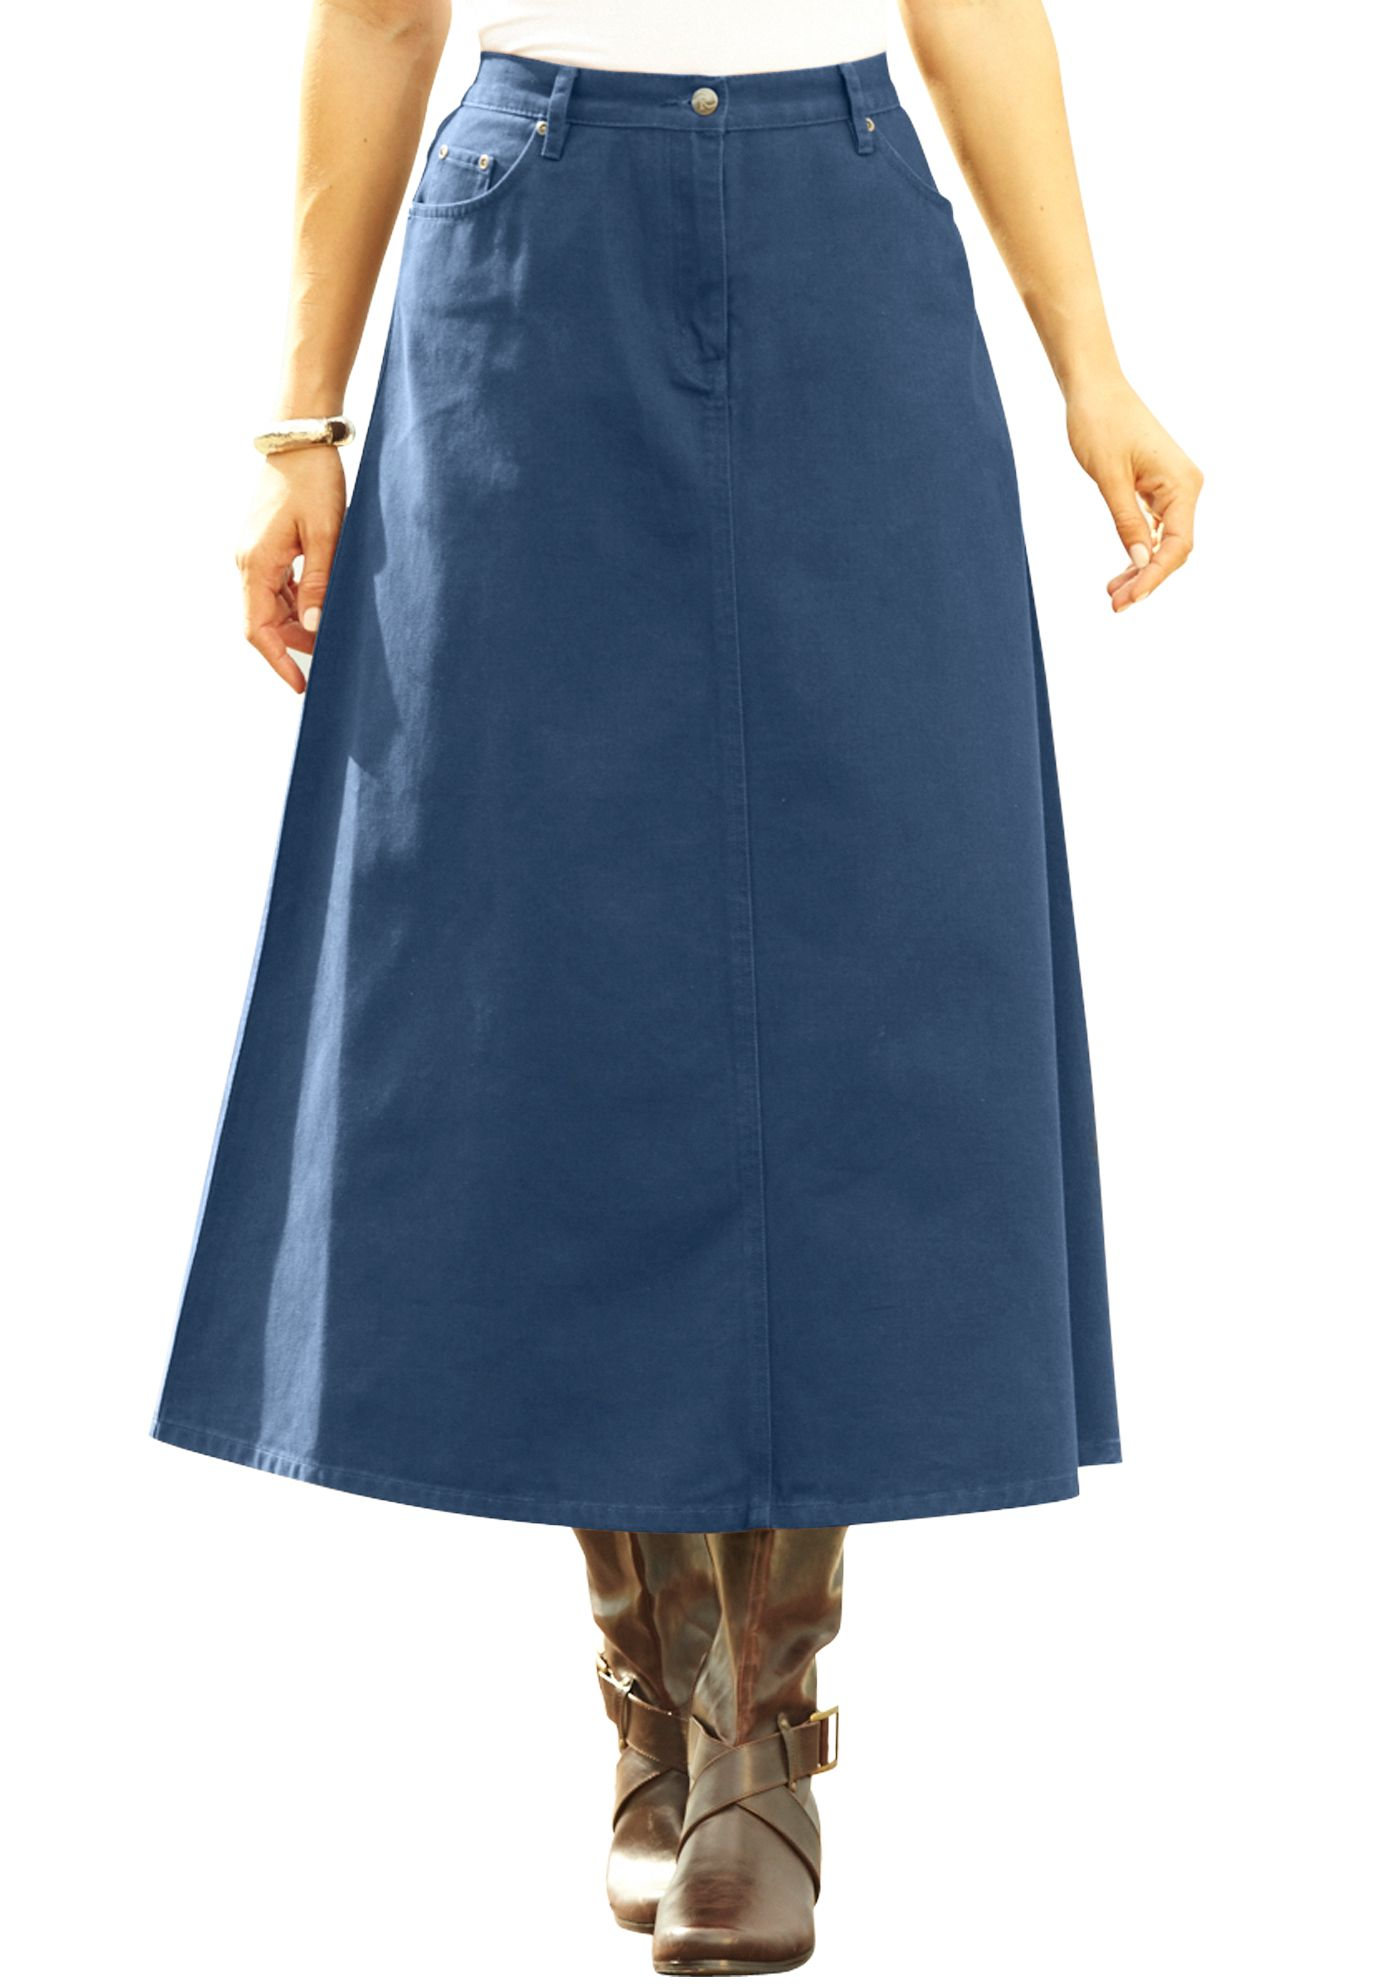 8d57b7e2f8 Perfect Denim A-line Skirt | Plus Size Dresses and Skirts | Roamans ...